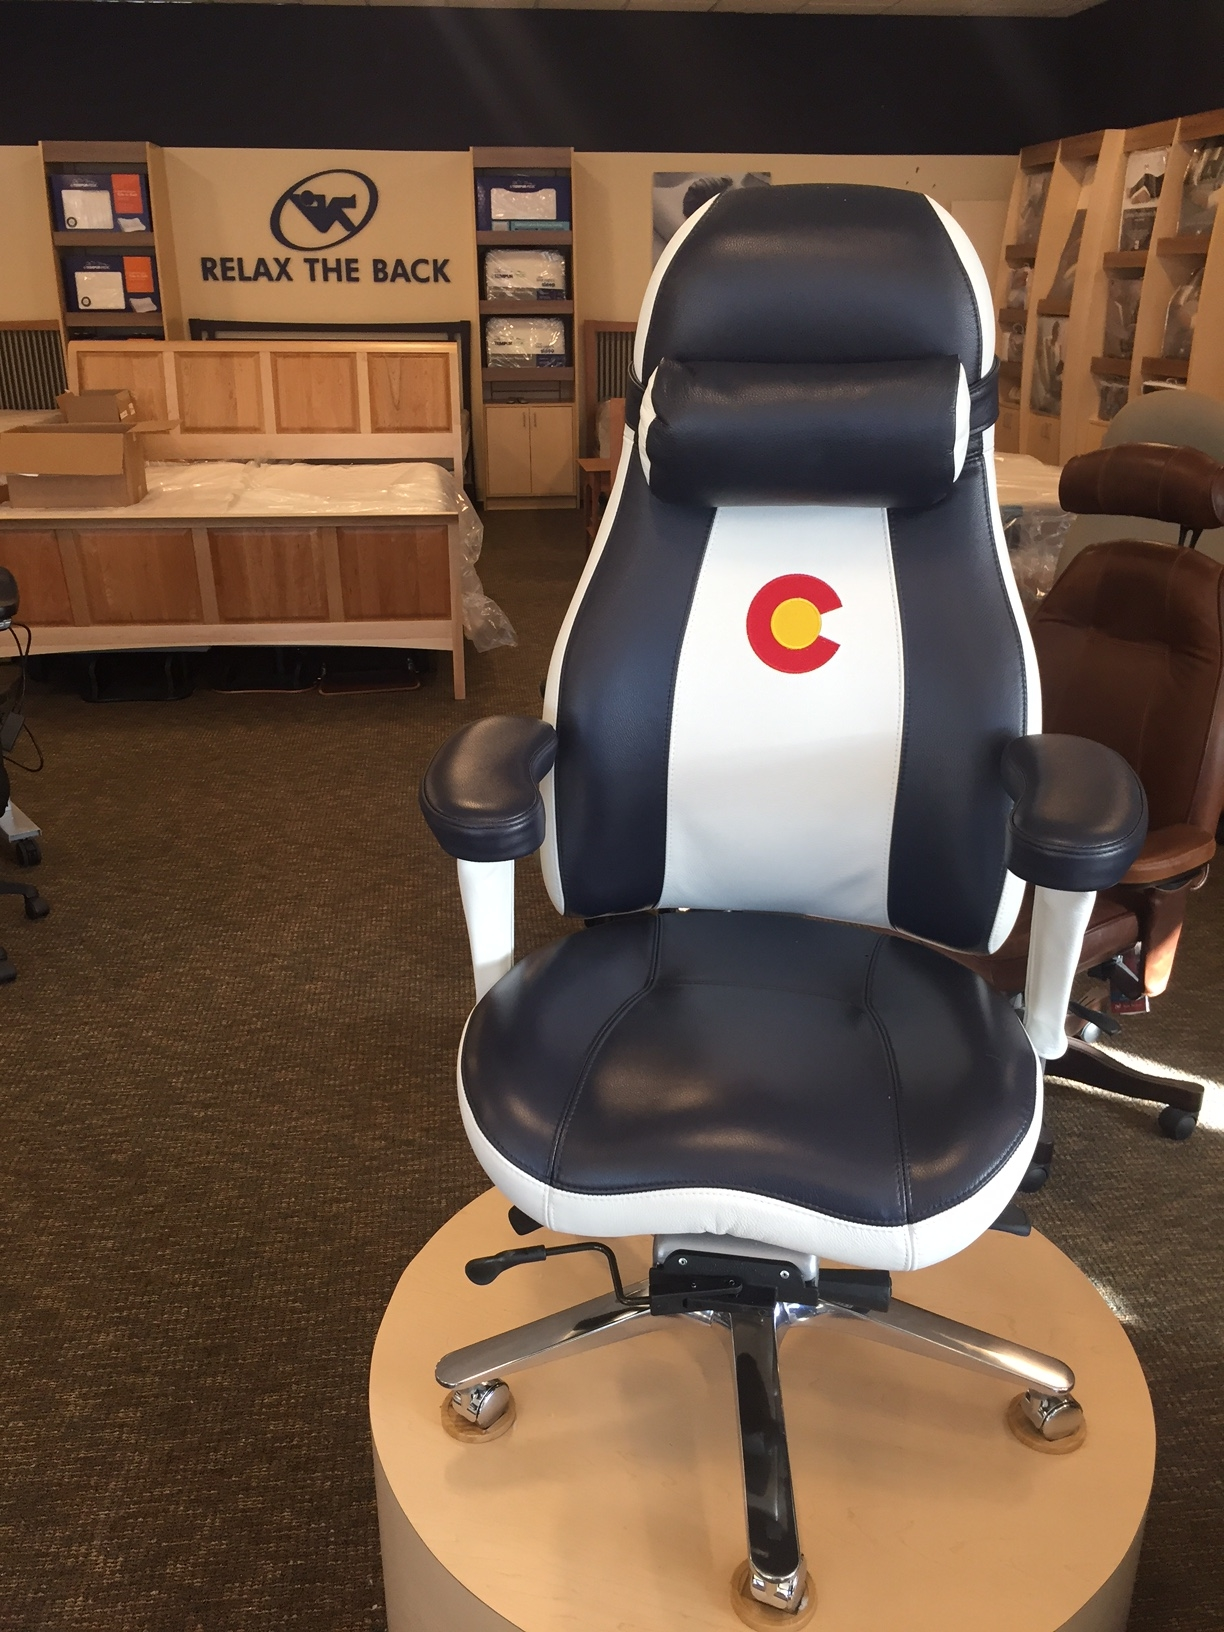 Relax The Back 320 S Colorado Blvd Glendale CO Furniture Stores